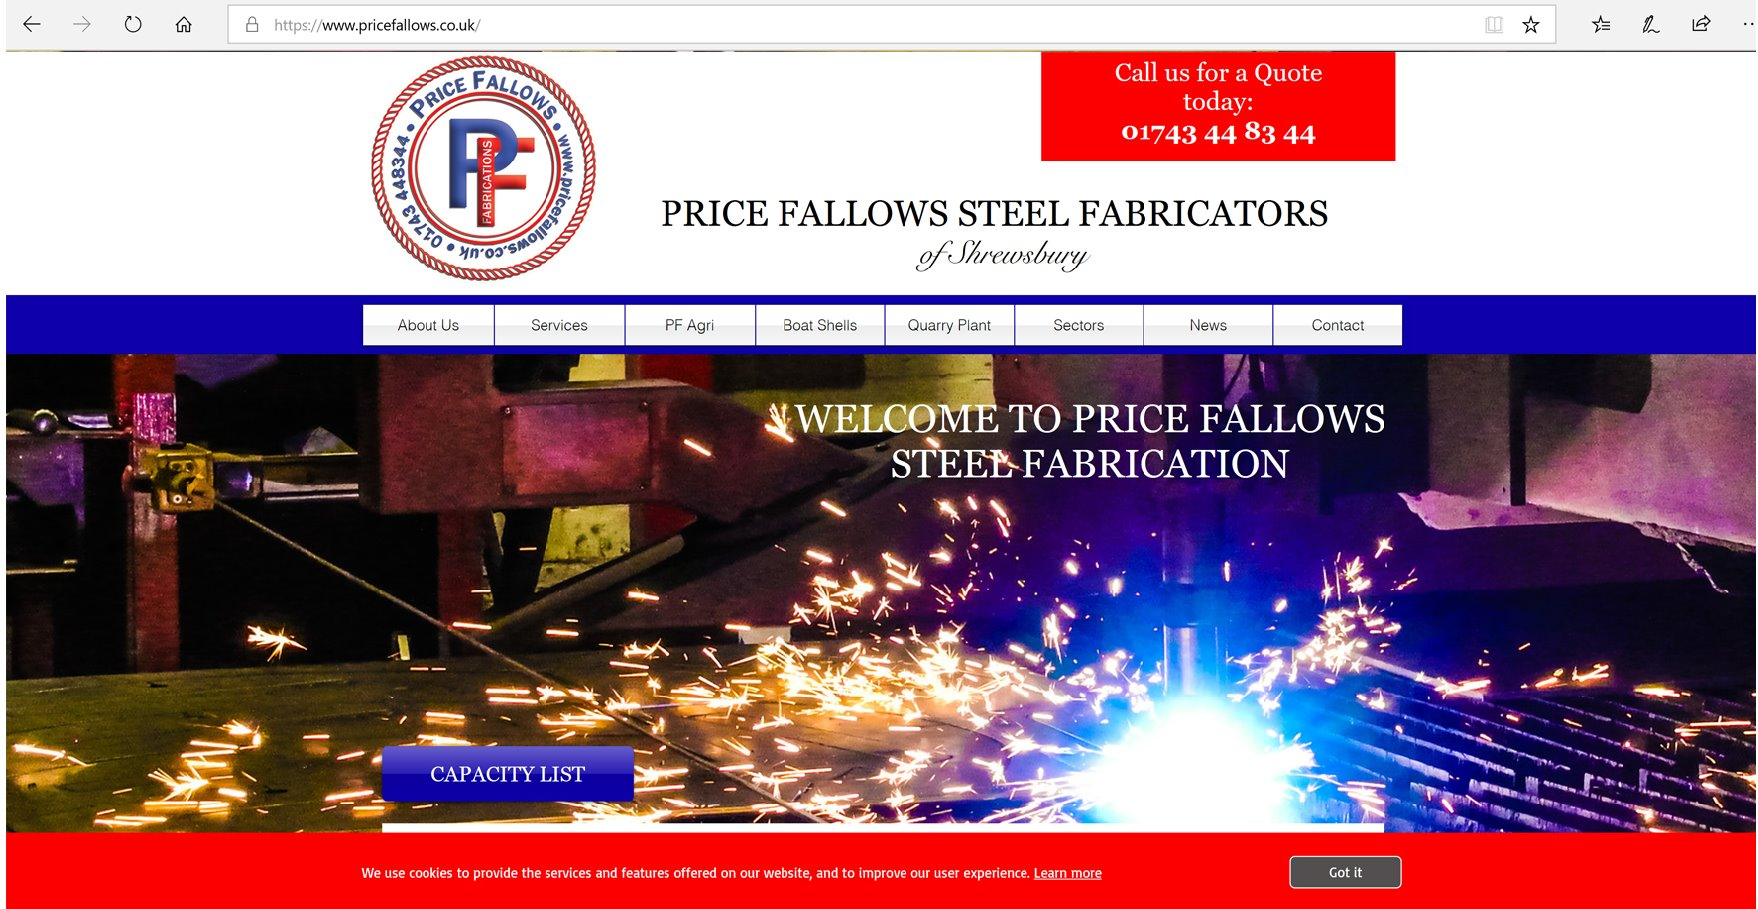 Price Fallows